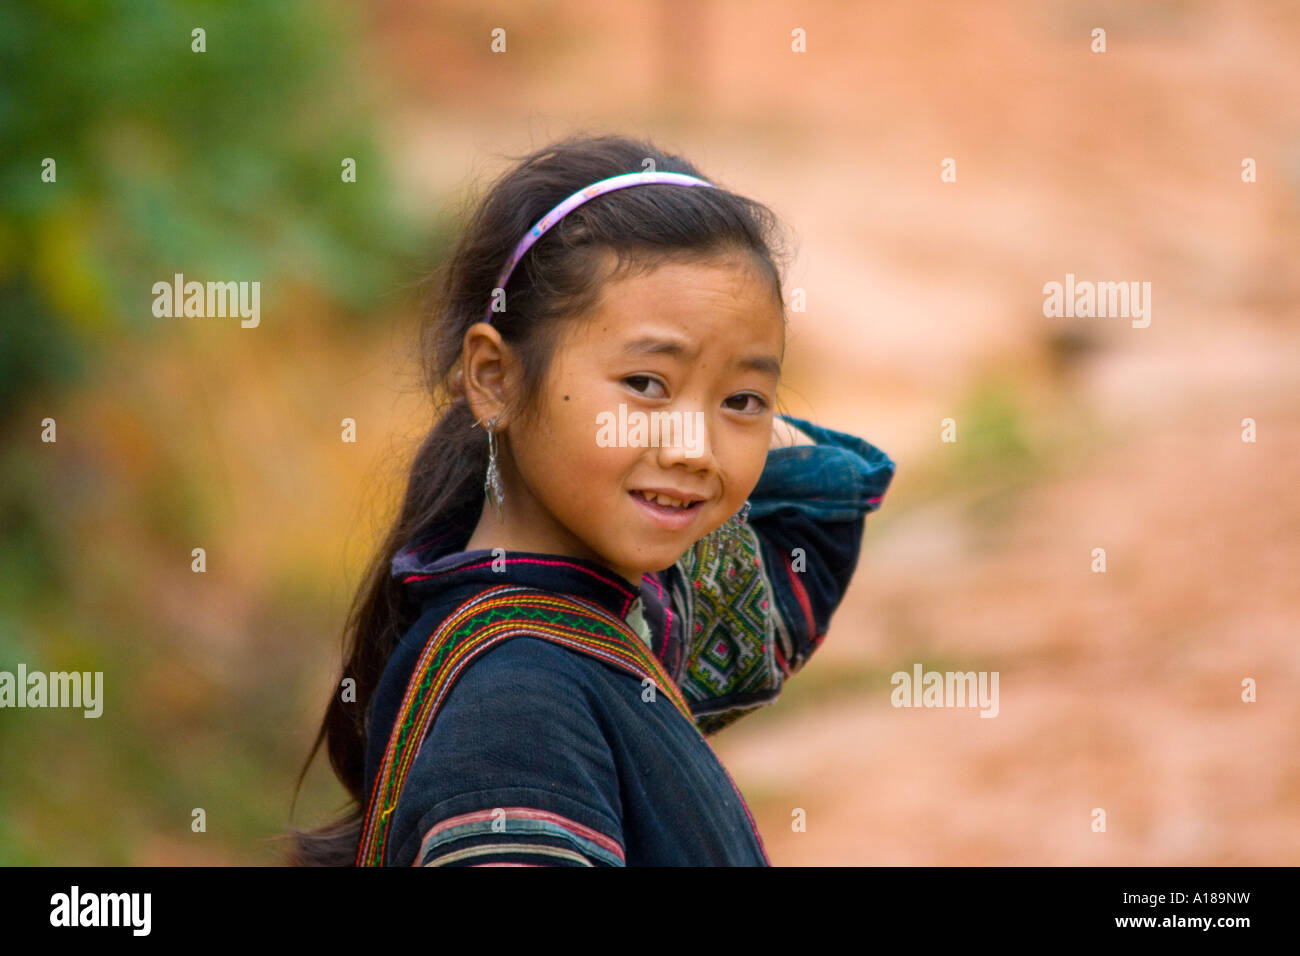 2007 Cute Young Hmong Girl in Traditional Clothing Sapa Vietnam Stock Photo